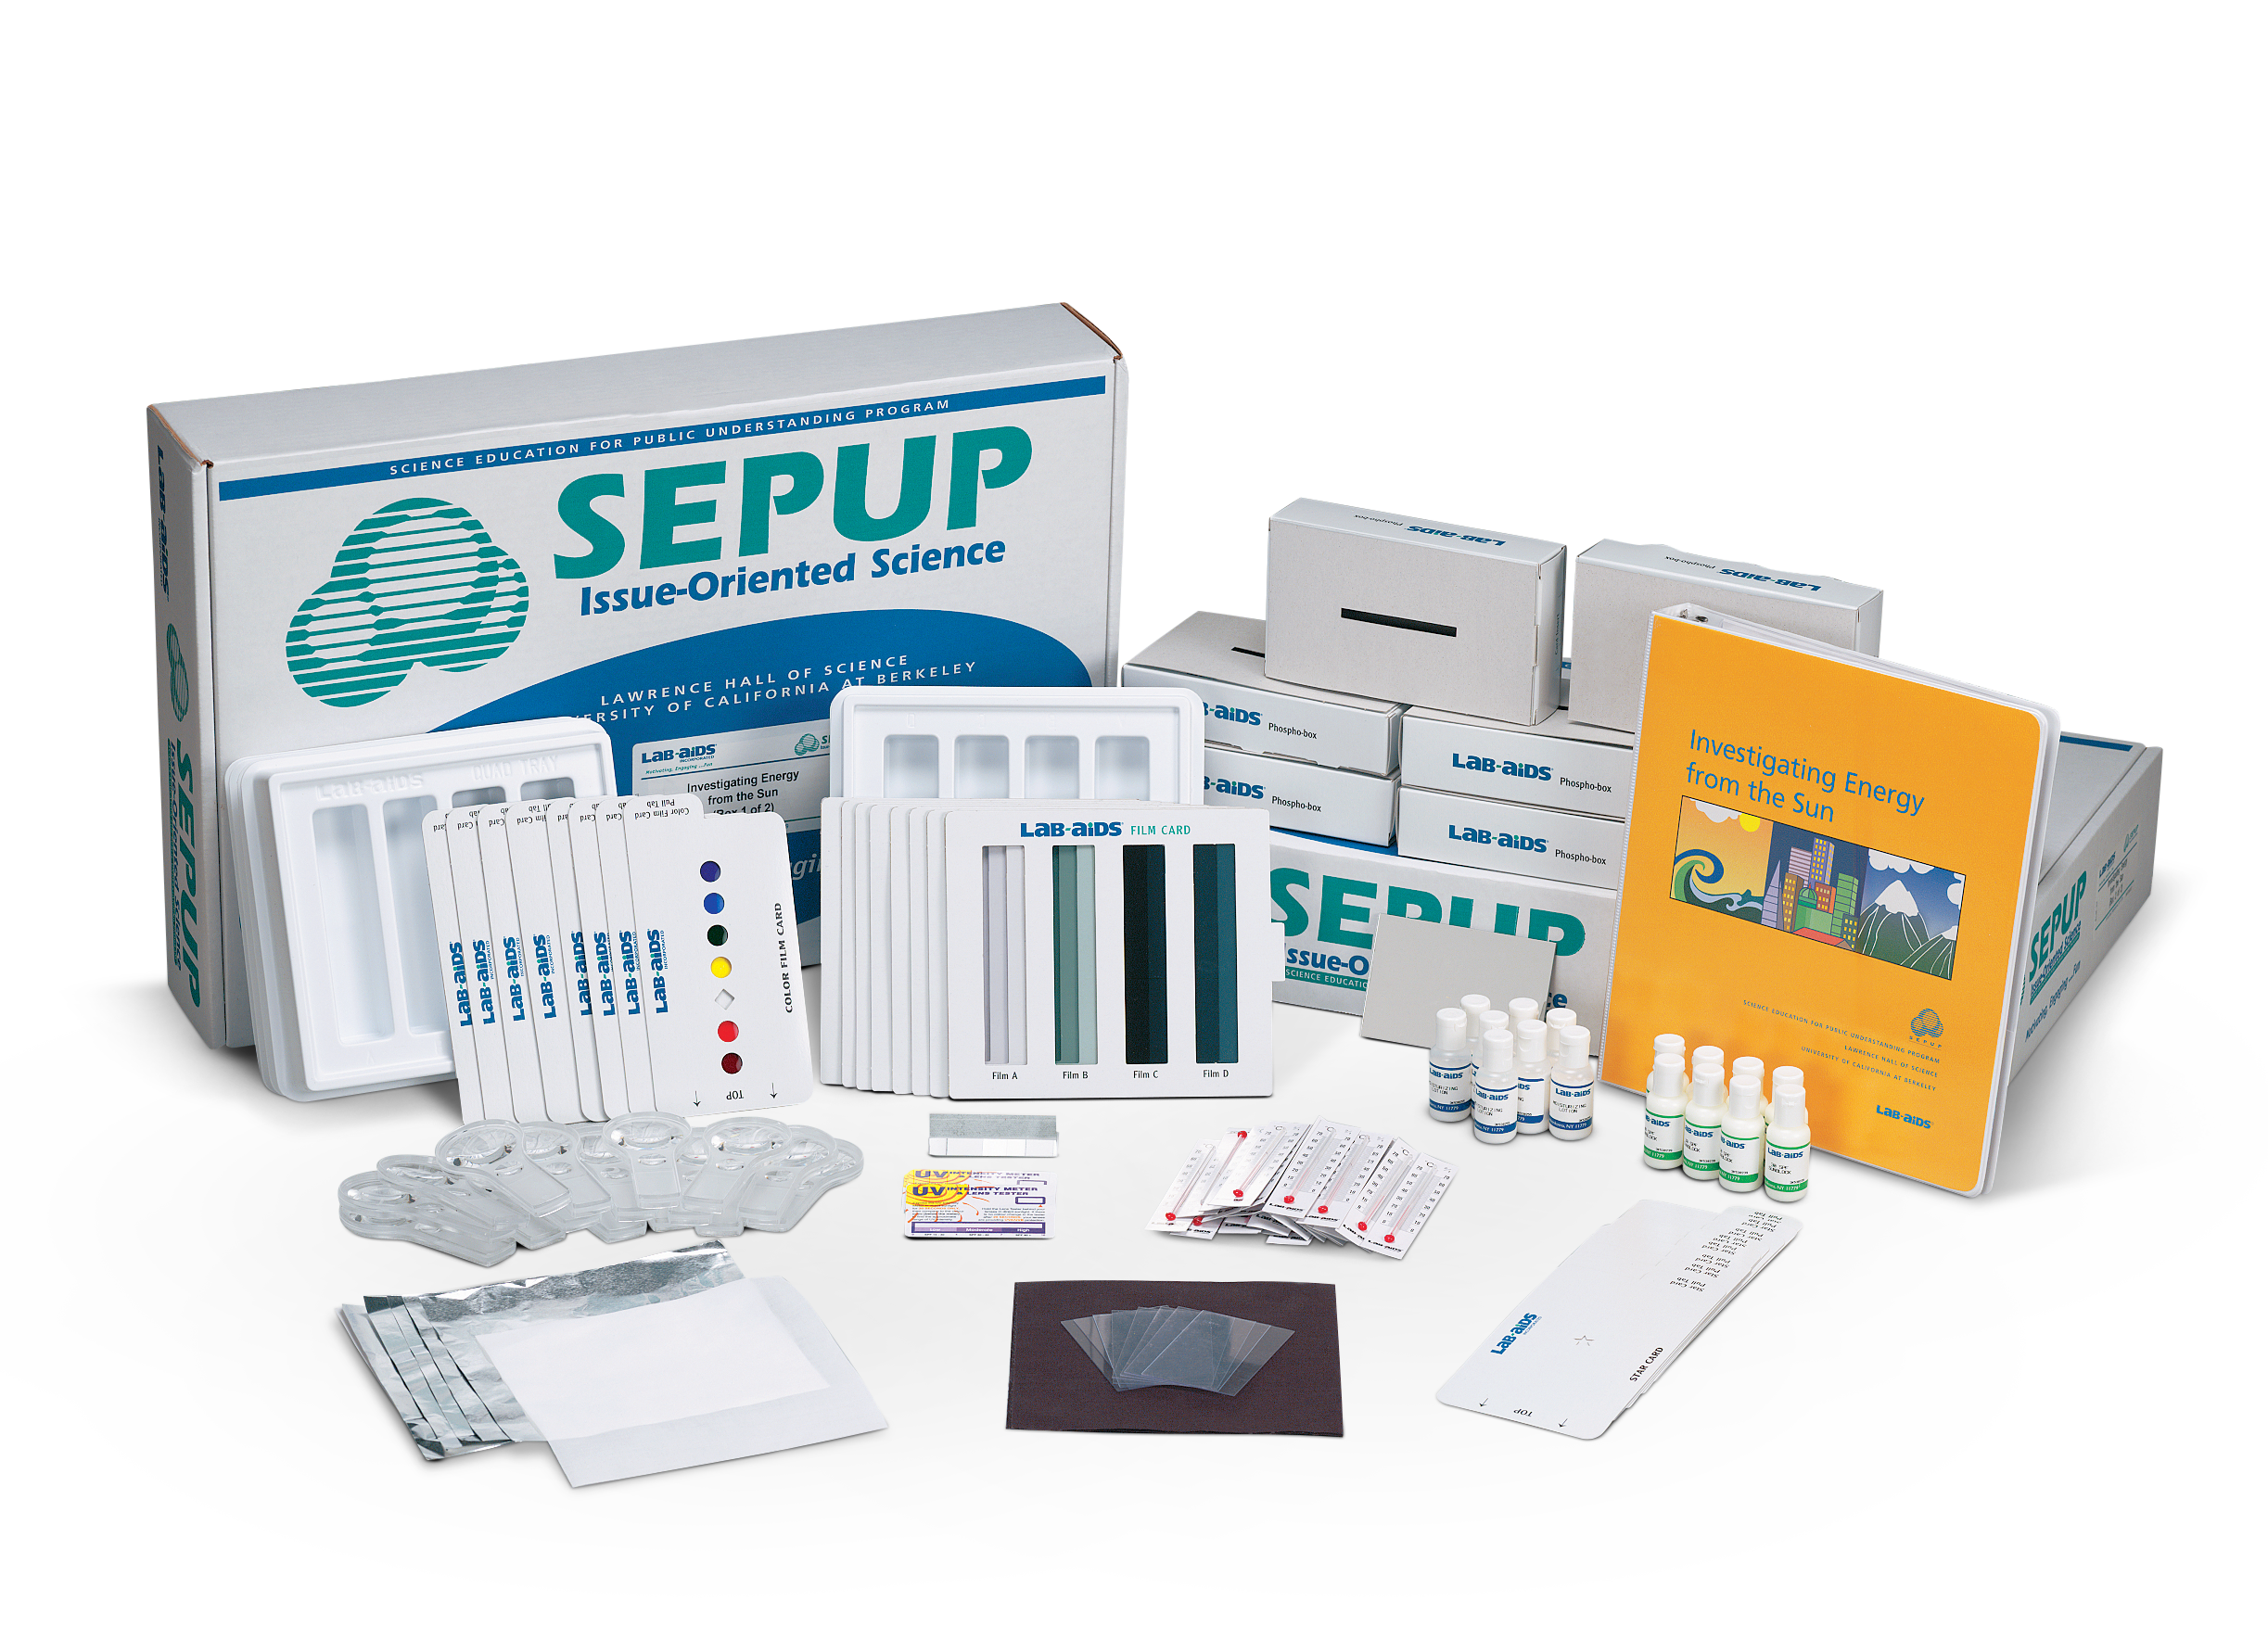 Investigating Energy from the Sun (Developed by SEPUP)